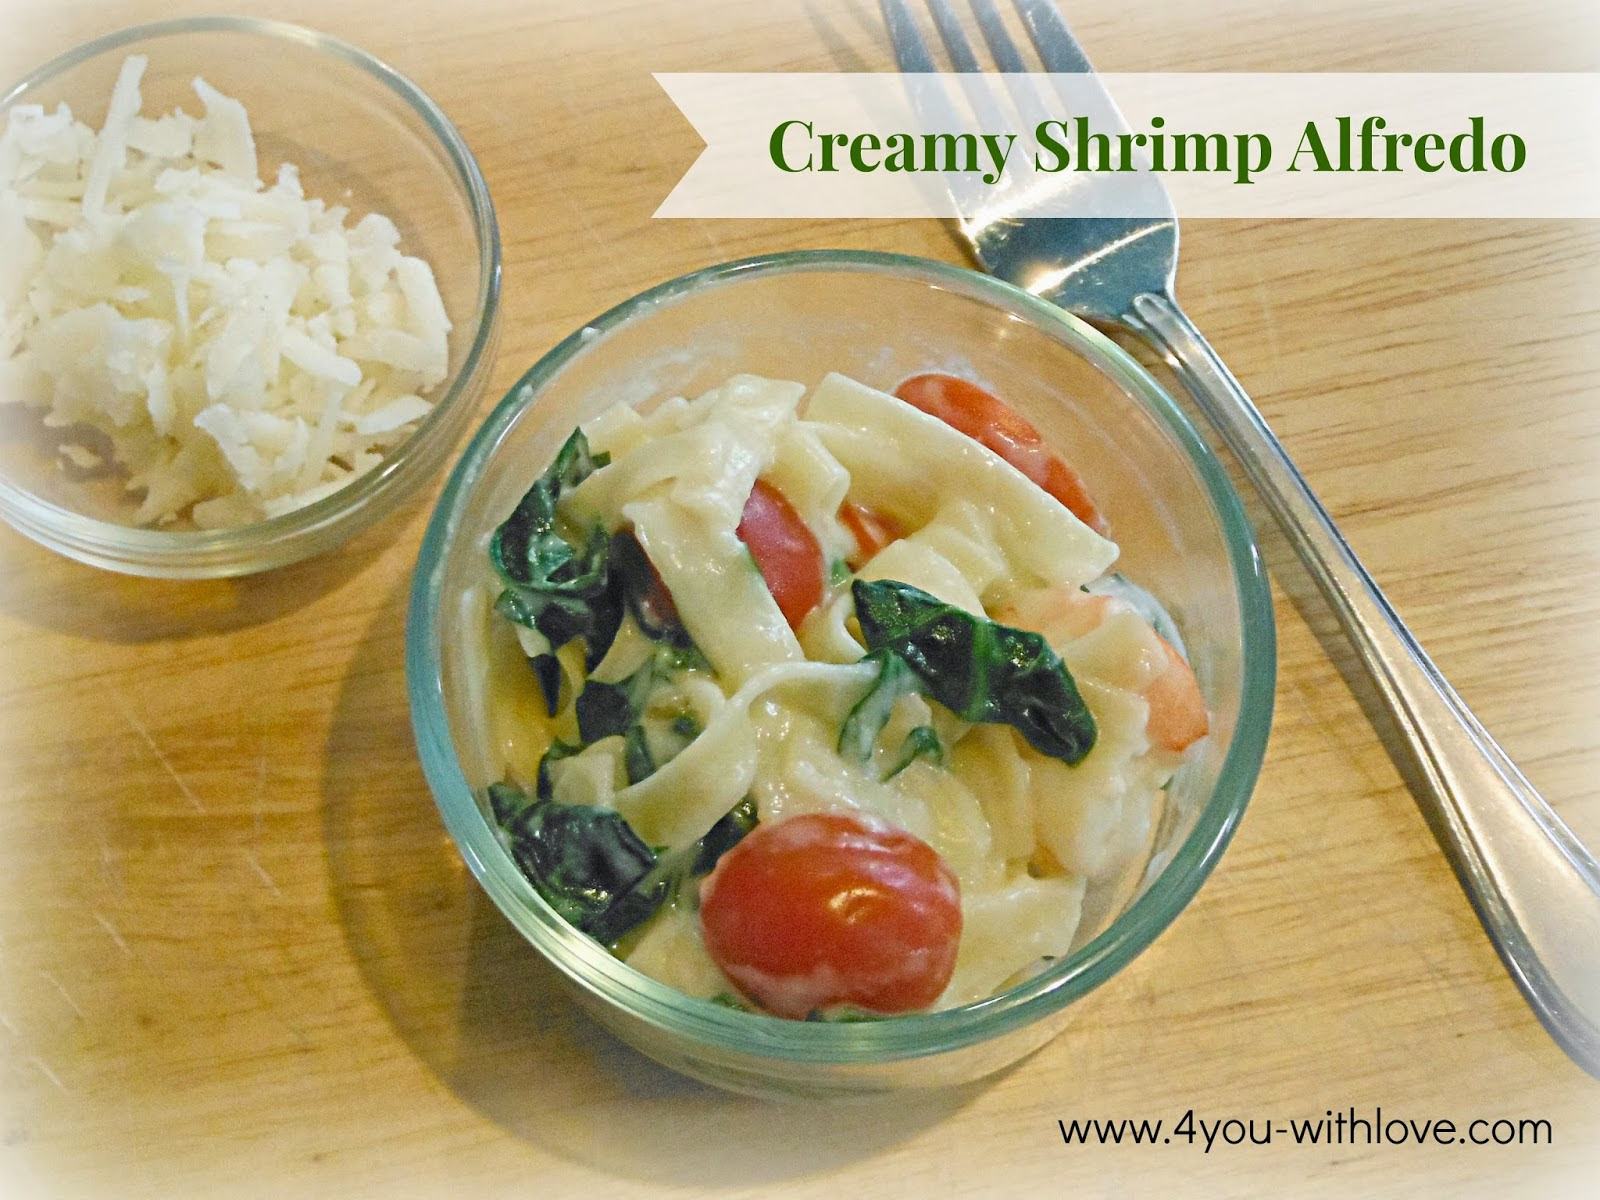 Creamy Shrimp Alfredo It Easy With Knorr Pasta Sides 4 You With Love